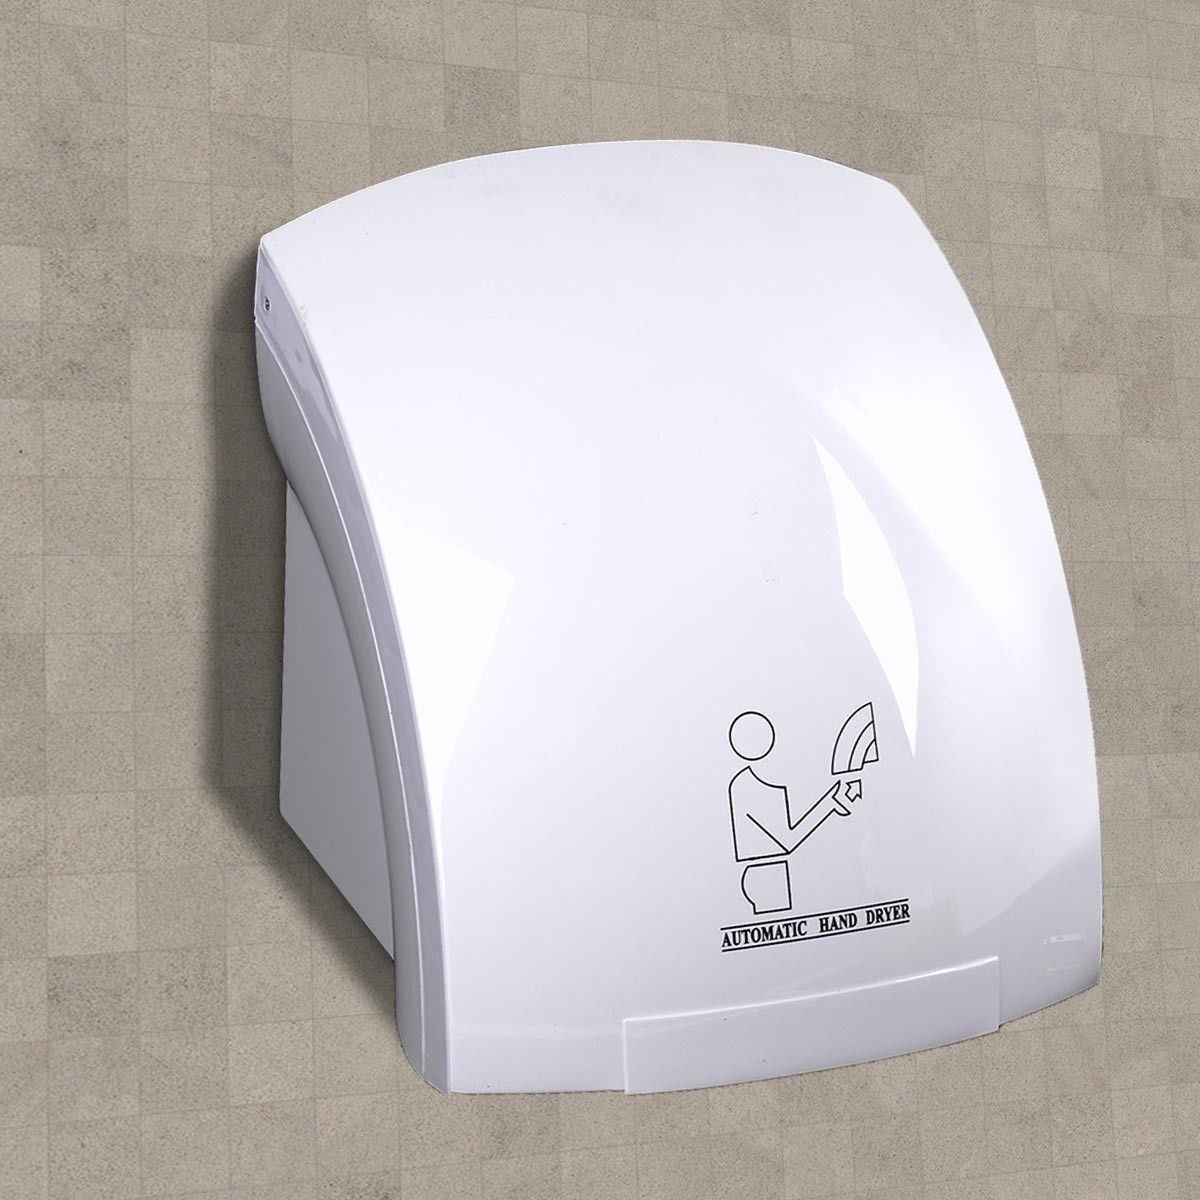 Electronix Express 78BW2408341 2011 Automatic Infrared Hand Dryer, Electric, Restaurant Bathroom, 12'' Height, 12'' Width, 12'' Length